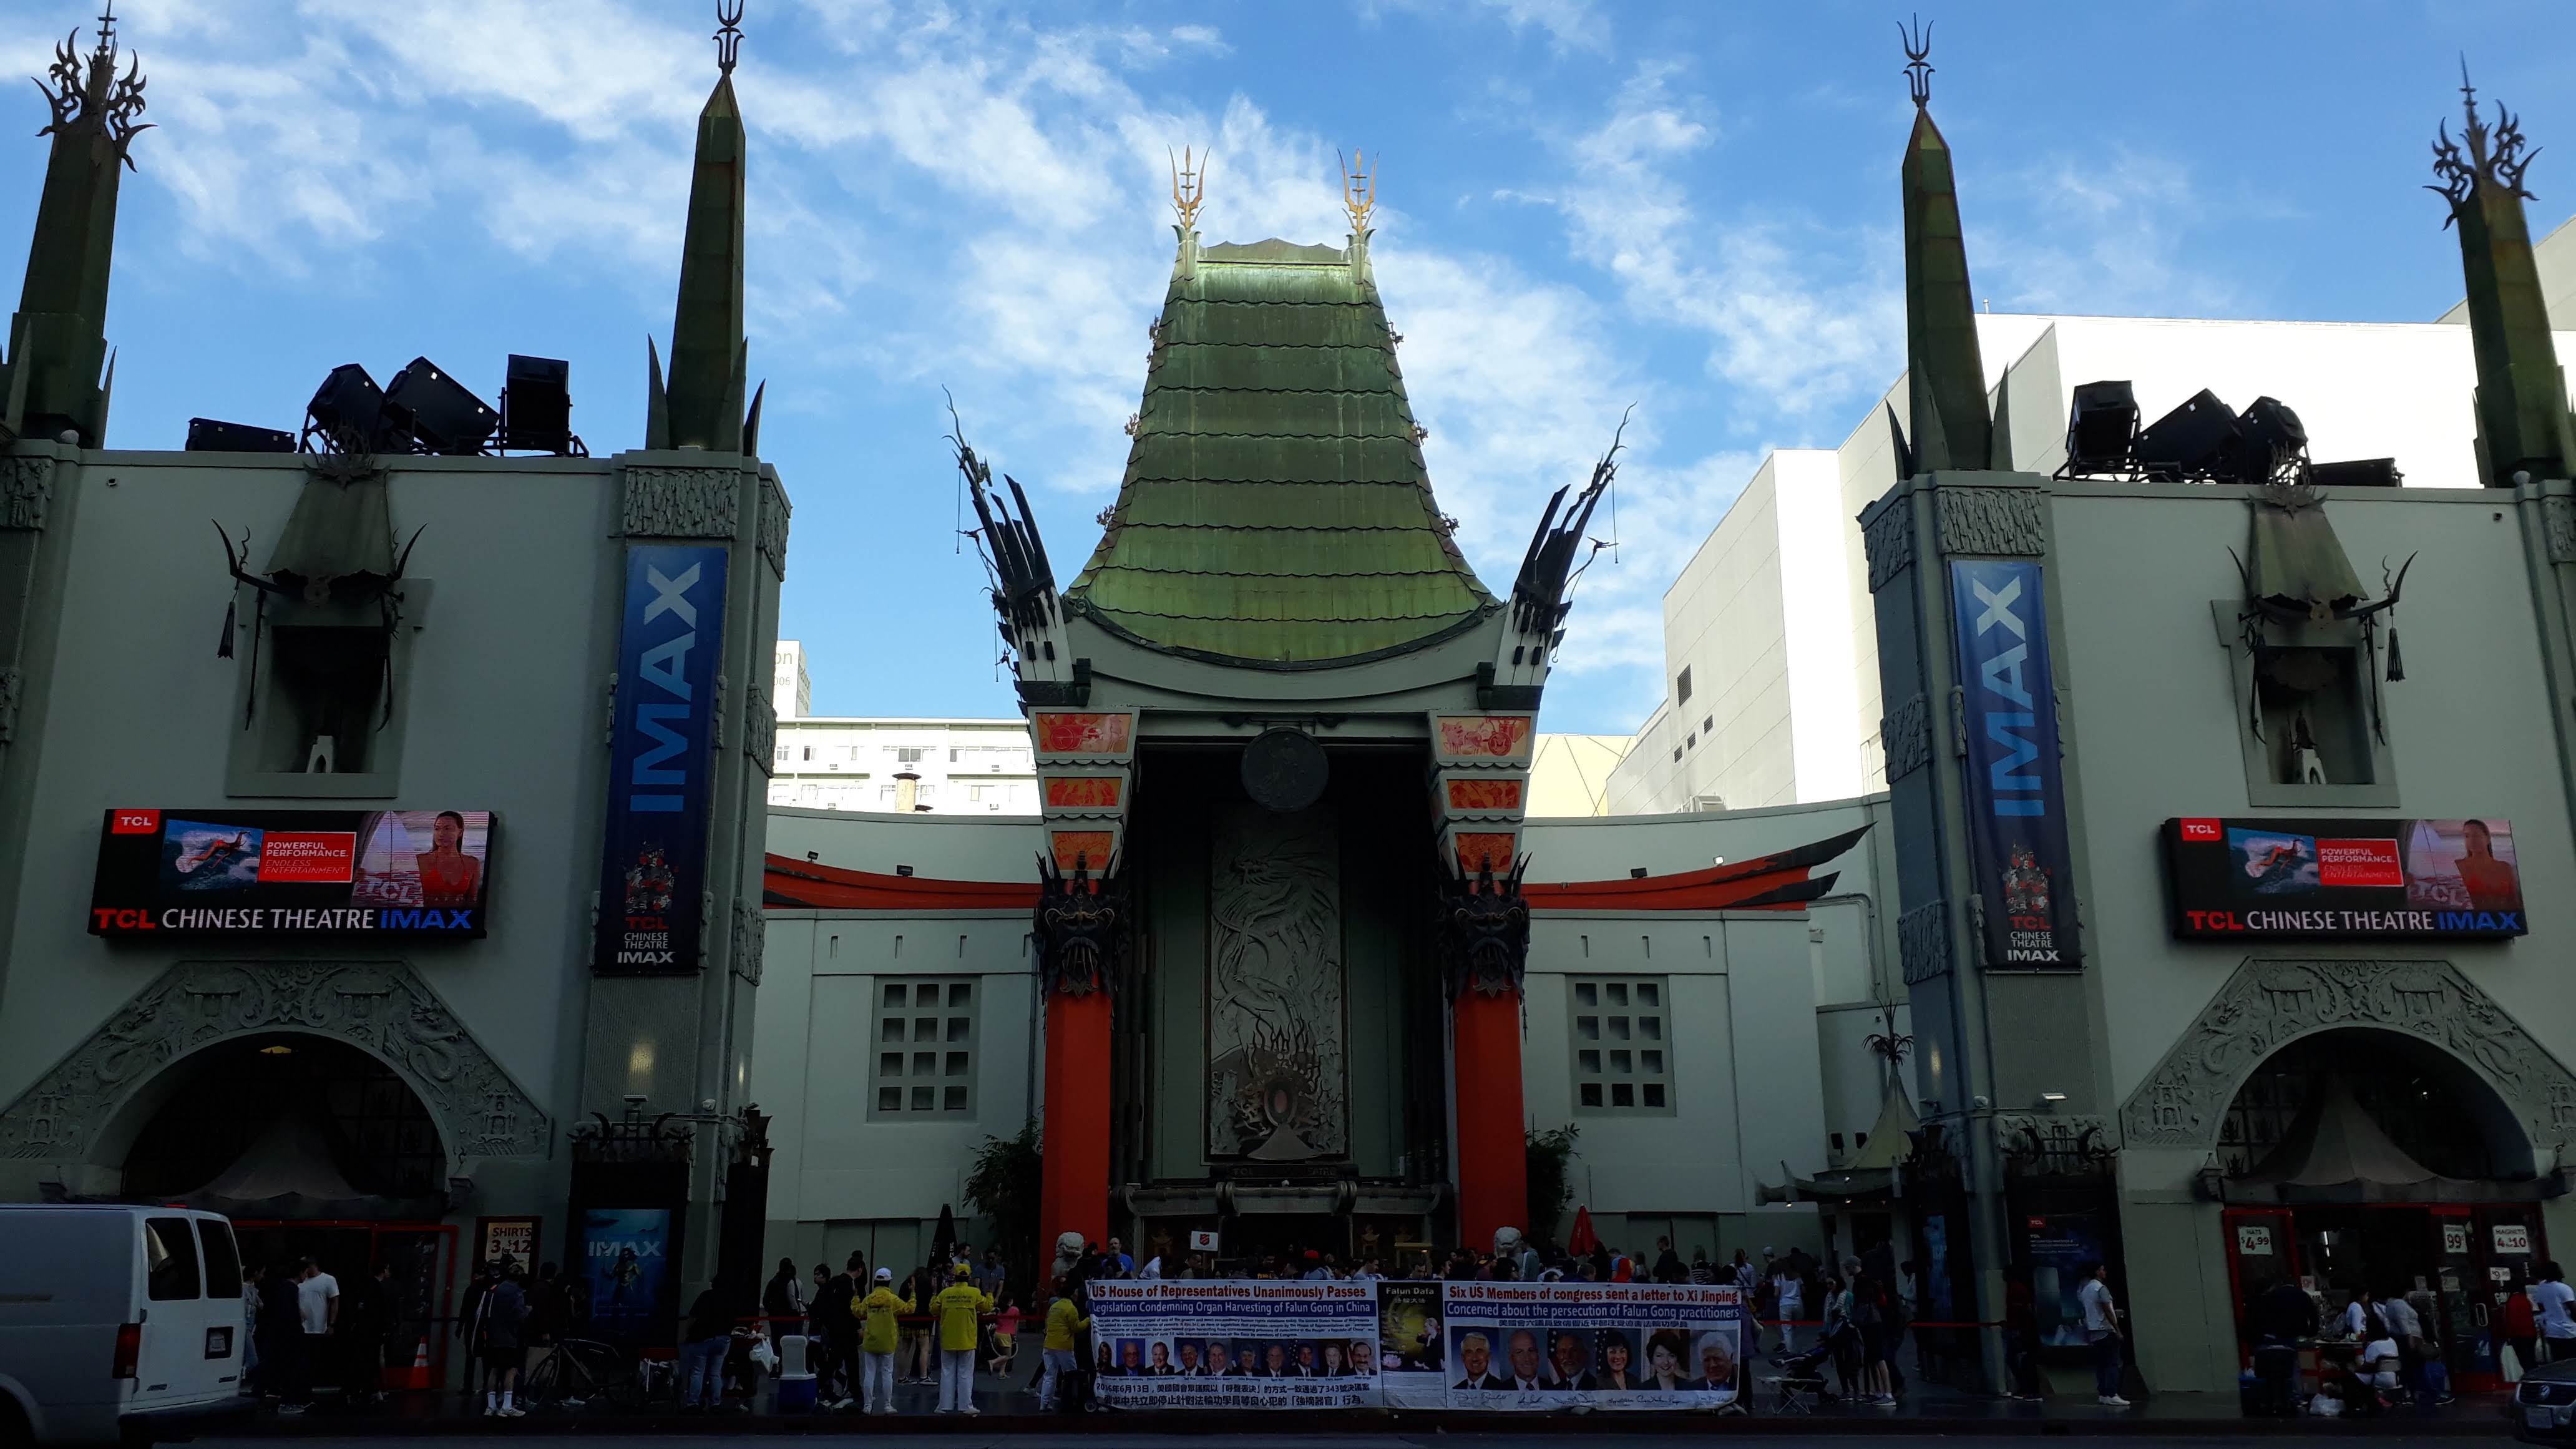 free things to do in Los Angeles - The Chinese Theatre